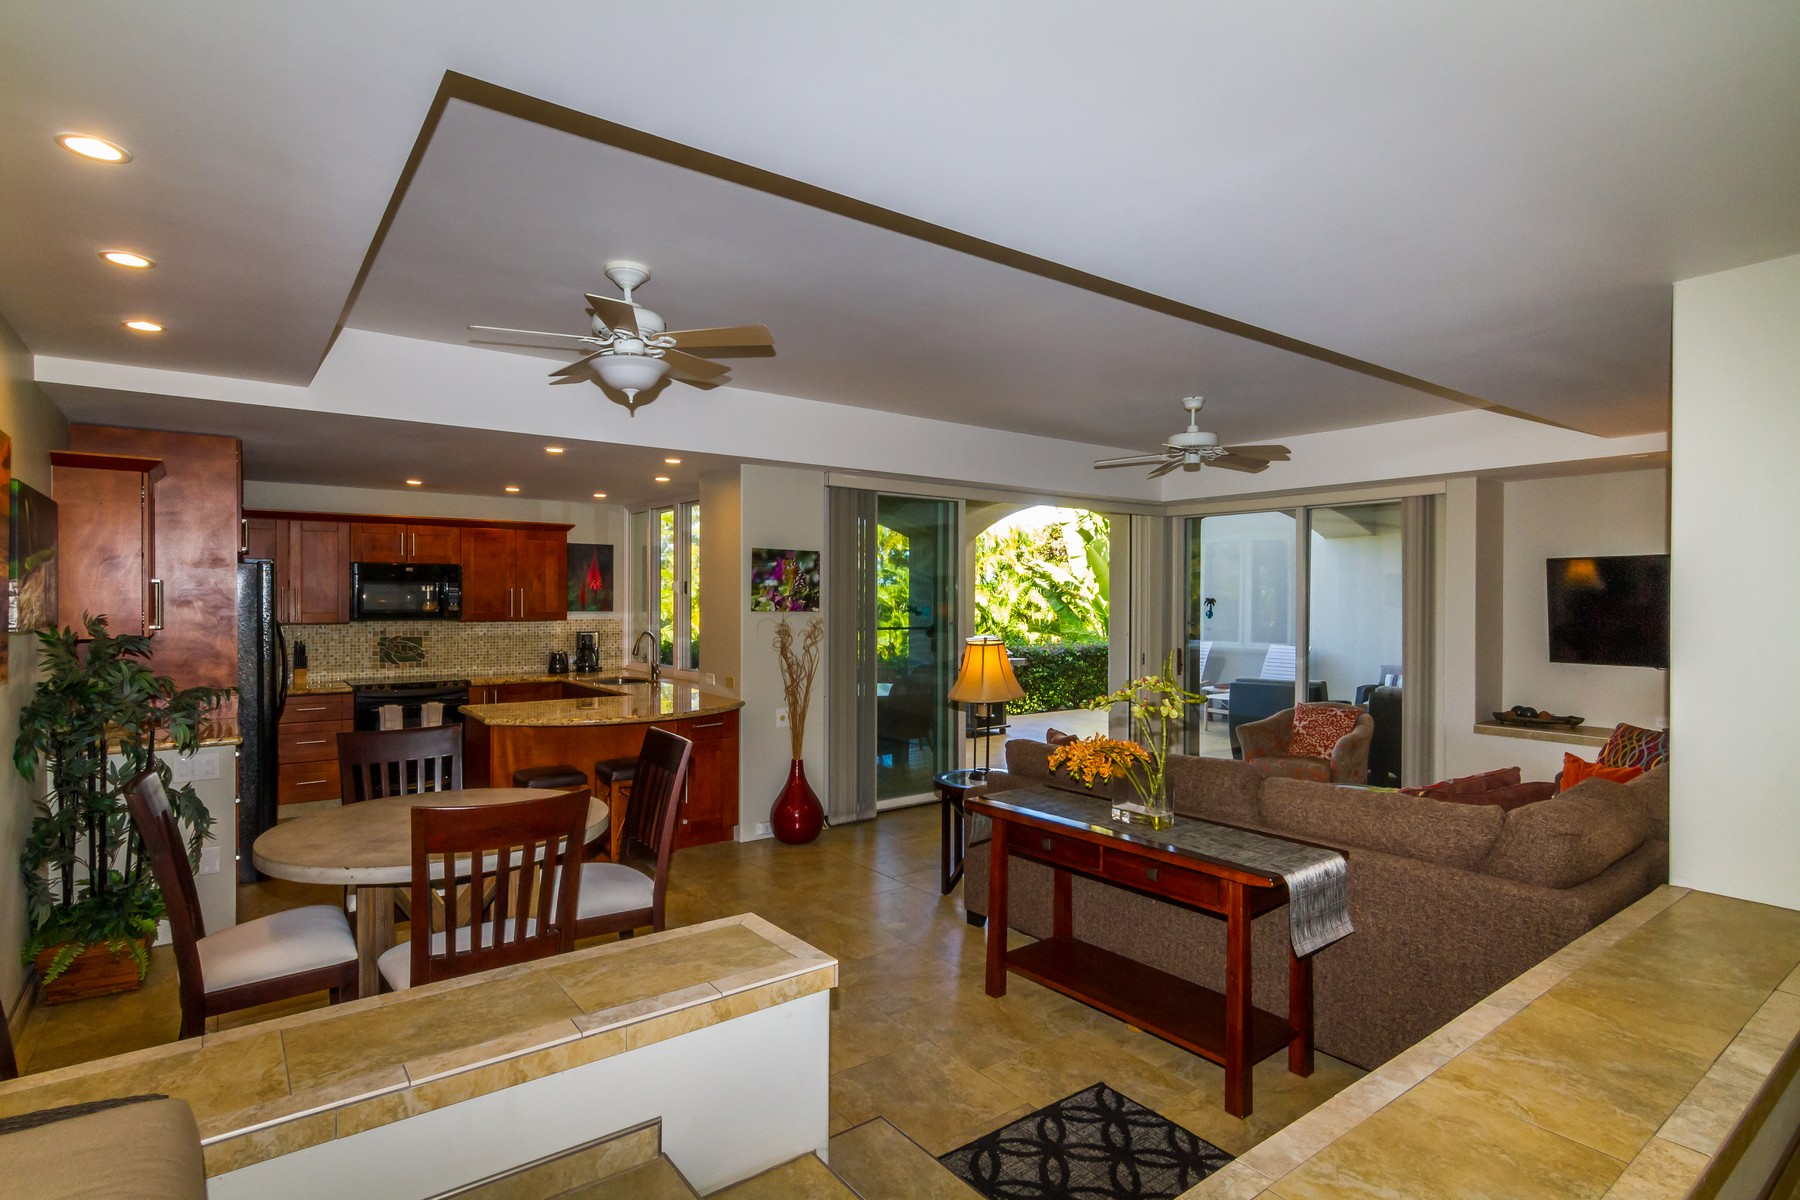 コンドミニアム のために 売買 アット Fully Renovated, Furnished 1 Bed Condo With Short Walk To Beach 3200 Wailea Alanui Drive, Palms at Wailea 2203 Wailea, ハワイ 96753 アメリカ合衆国